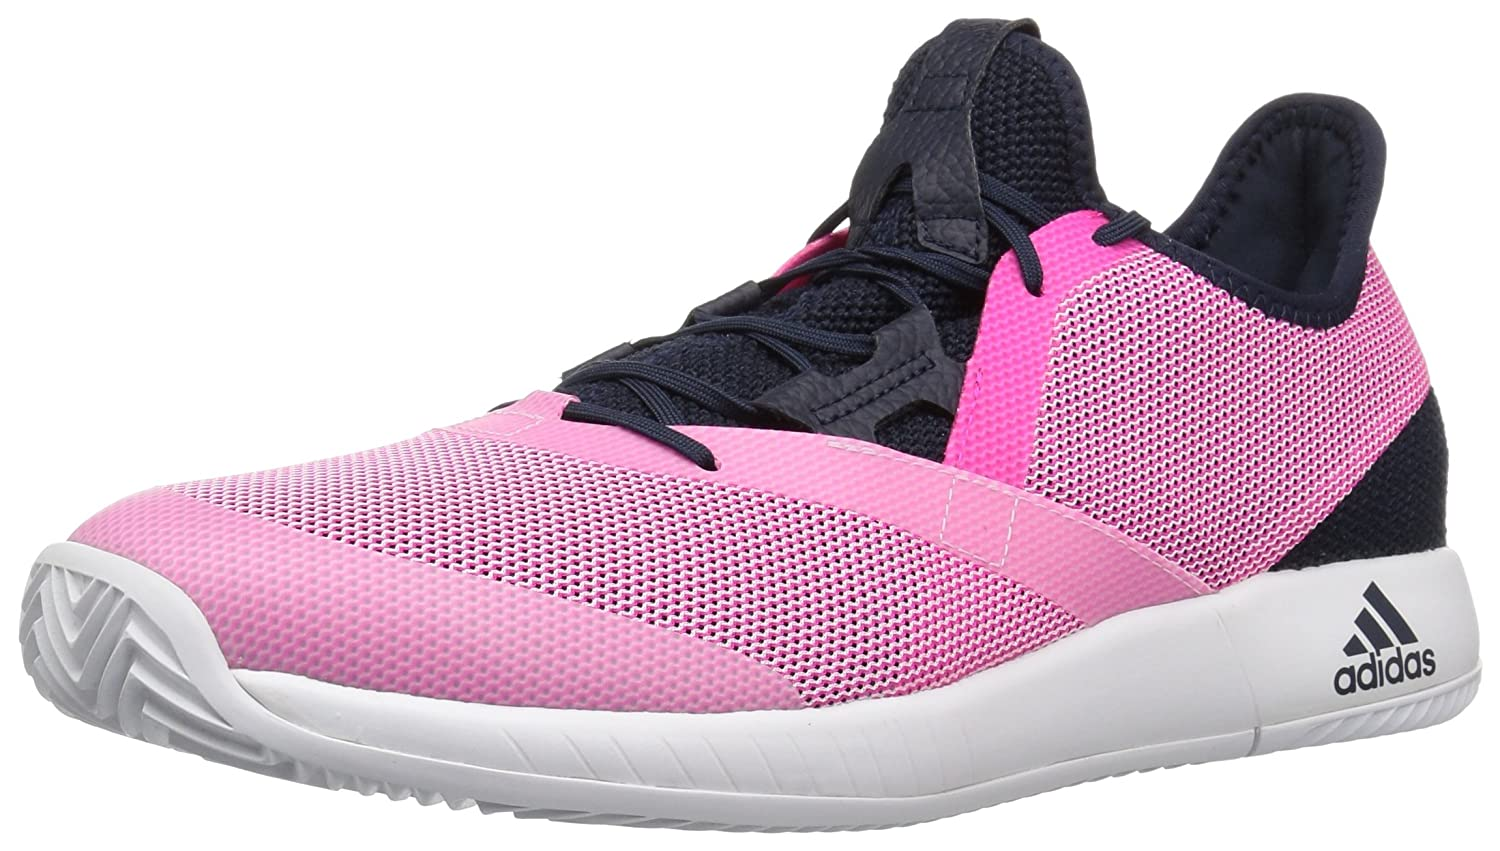 adidas Women's Adizero Defiant Bounce B077X558K9 8.5 B(M) US|Legend Ink/Shock Pink/White